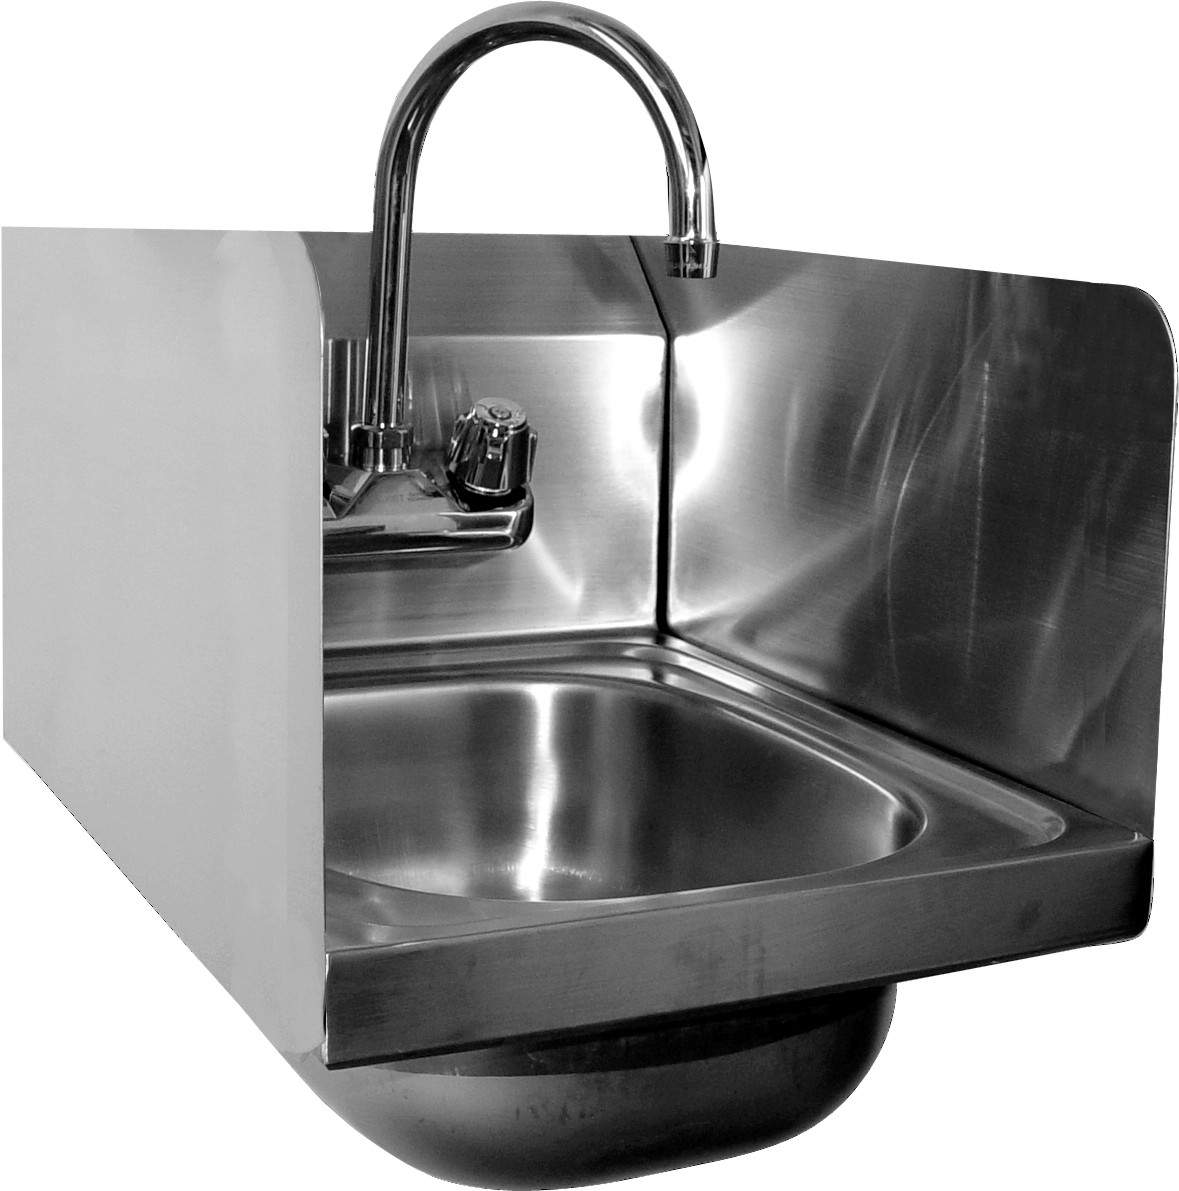 splash guard kitchen sink triple hand 12x17 s guards nsf w no lead faucet